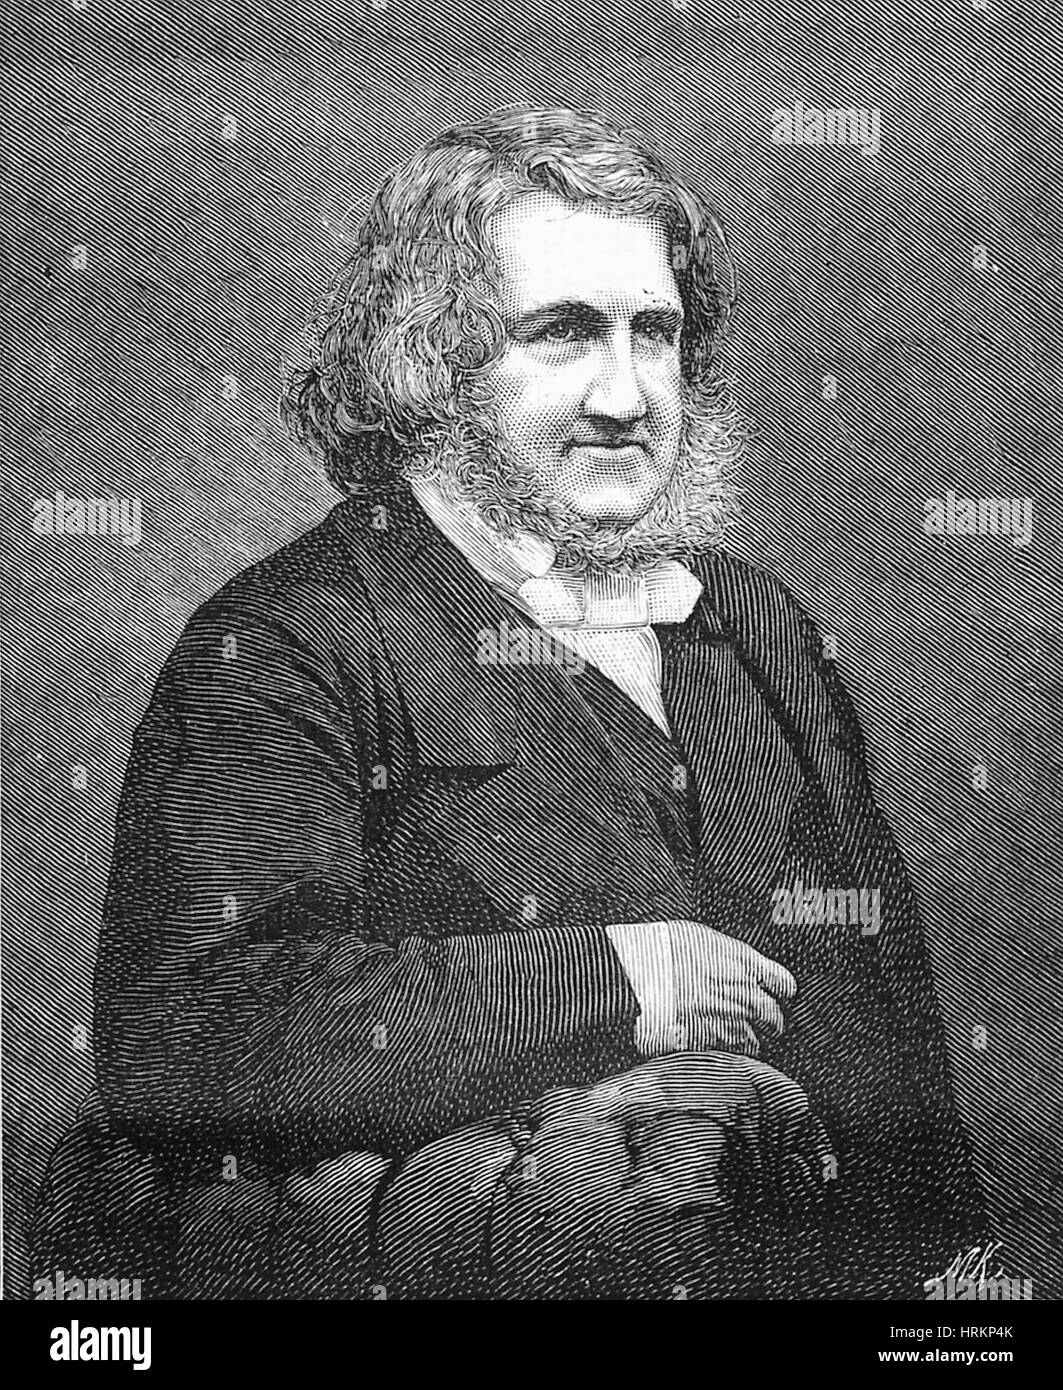 James Young Simpson, Scottish Physician - Stock Image